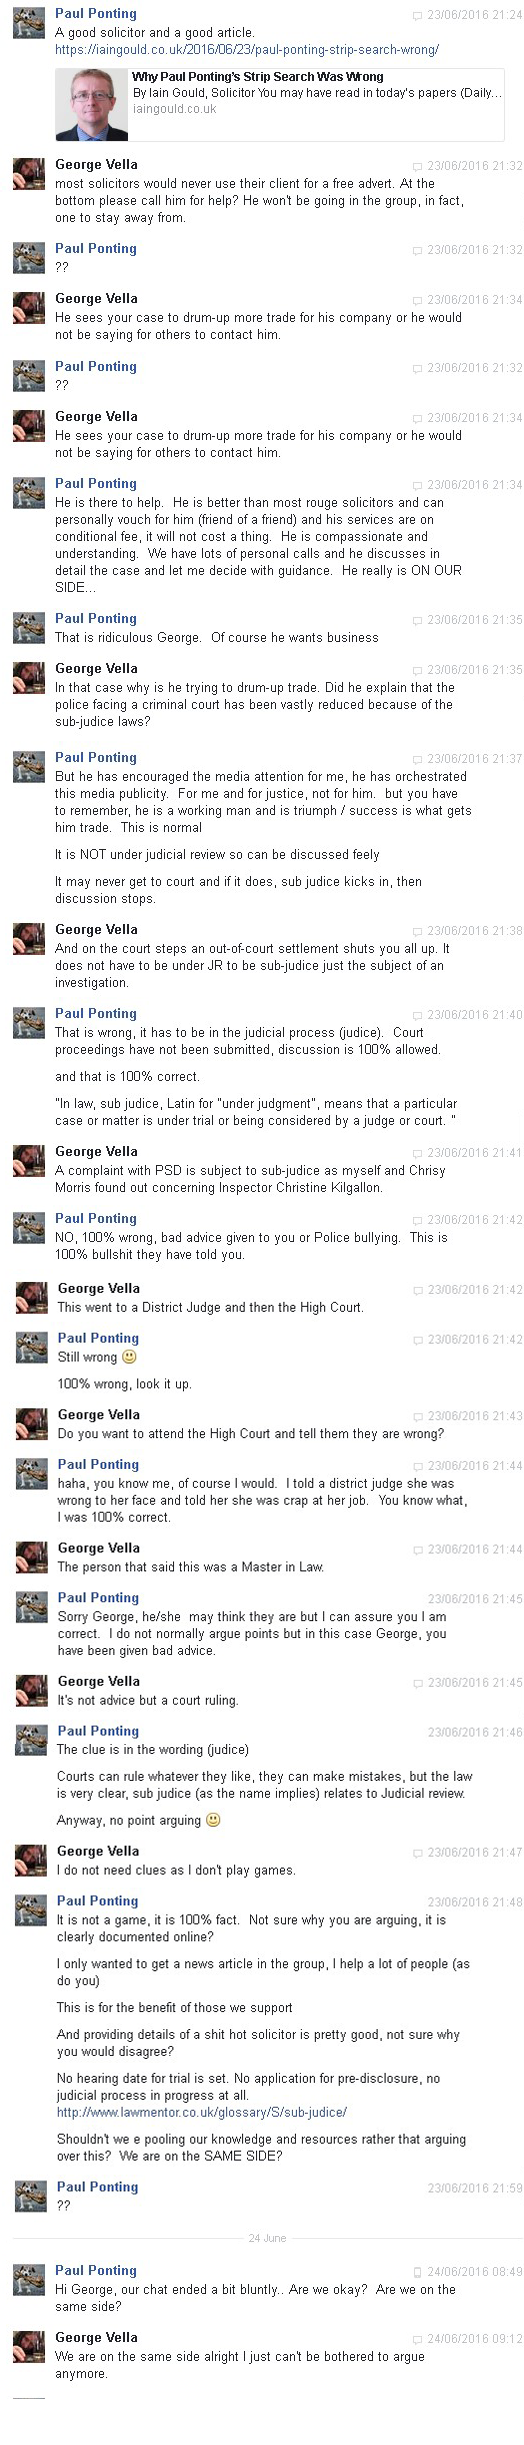 george-vella-giving-incorrect-legal-advice